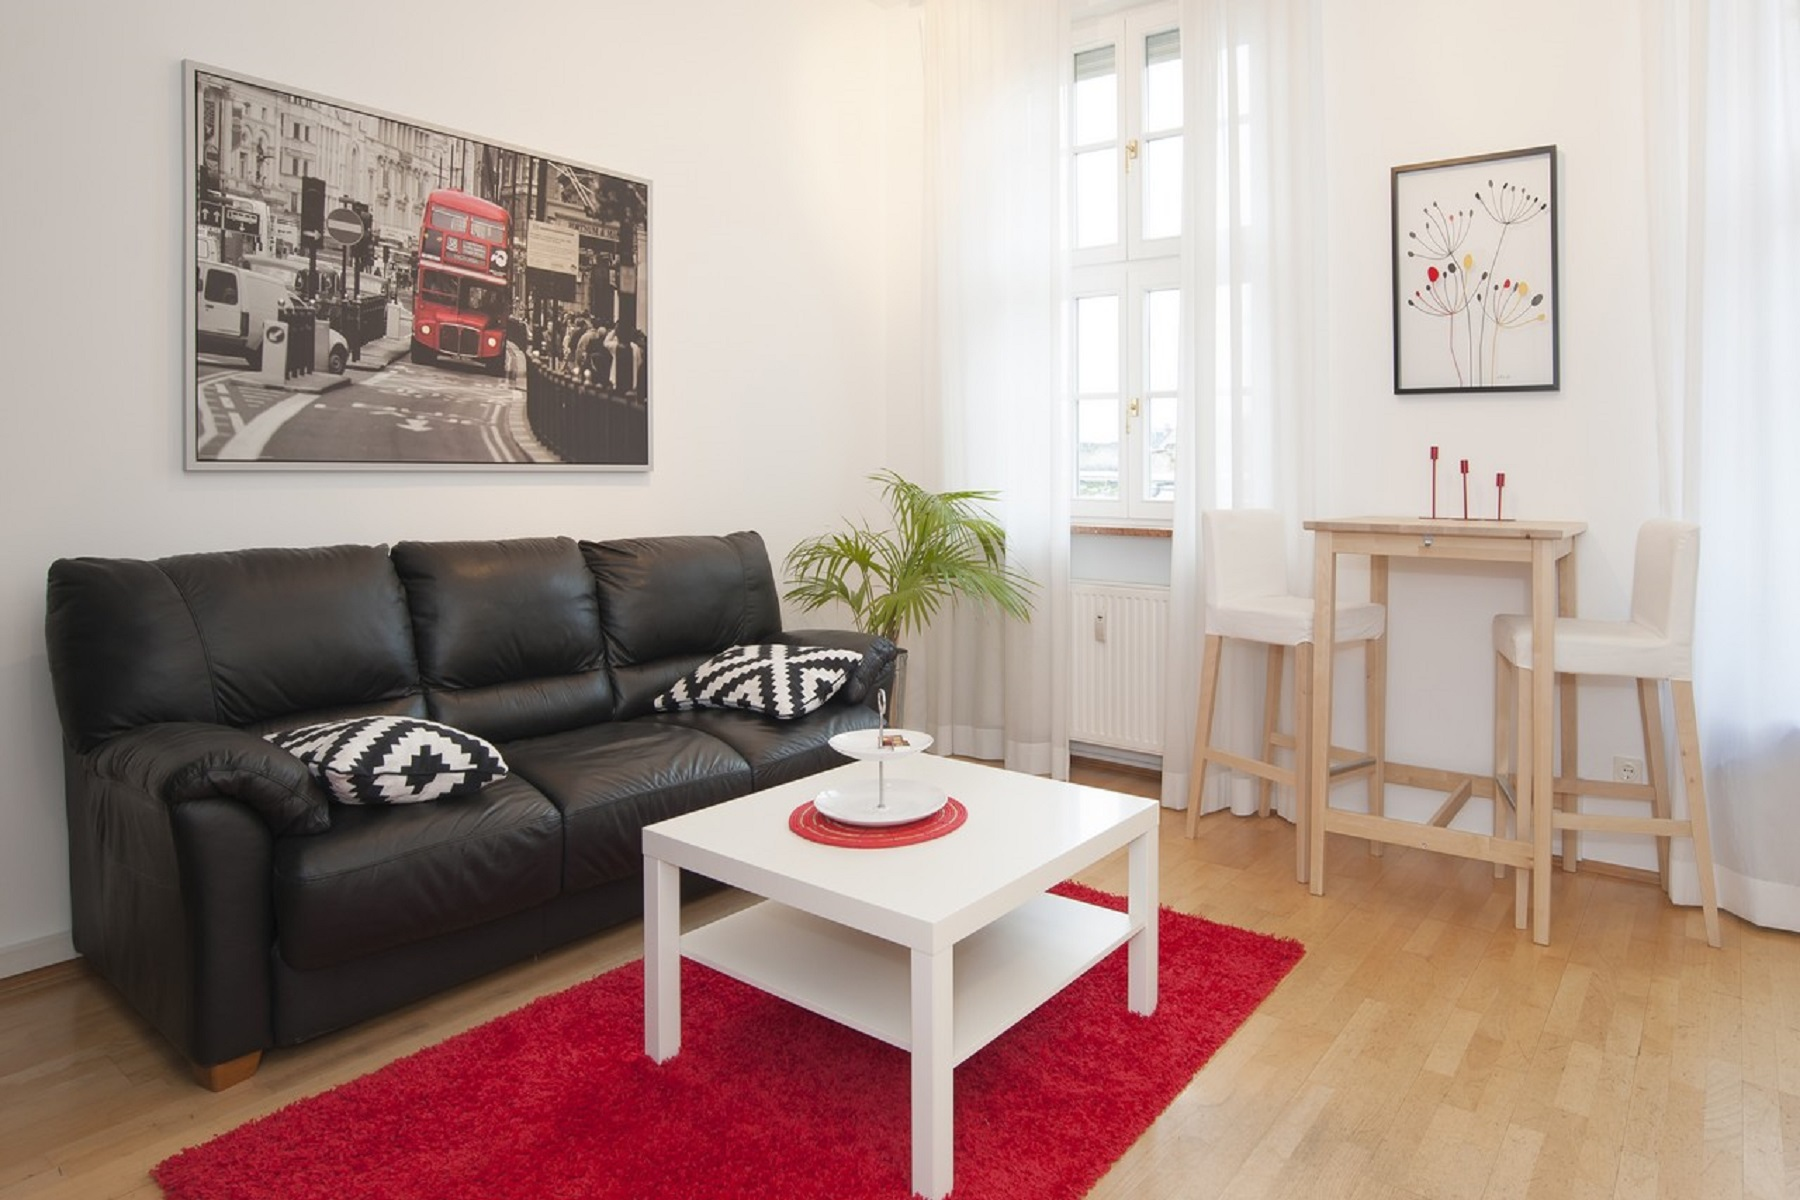 Apartment for Sale at Urban Living Gem Wiesbaden, Hessen, 65183 Germany